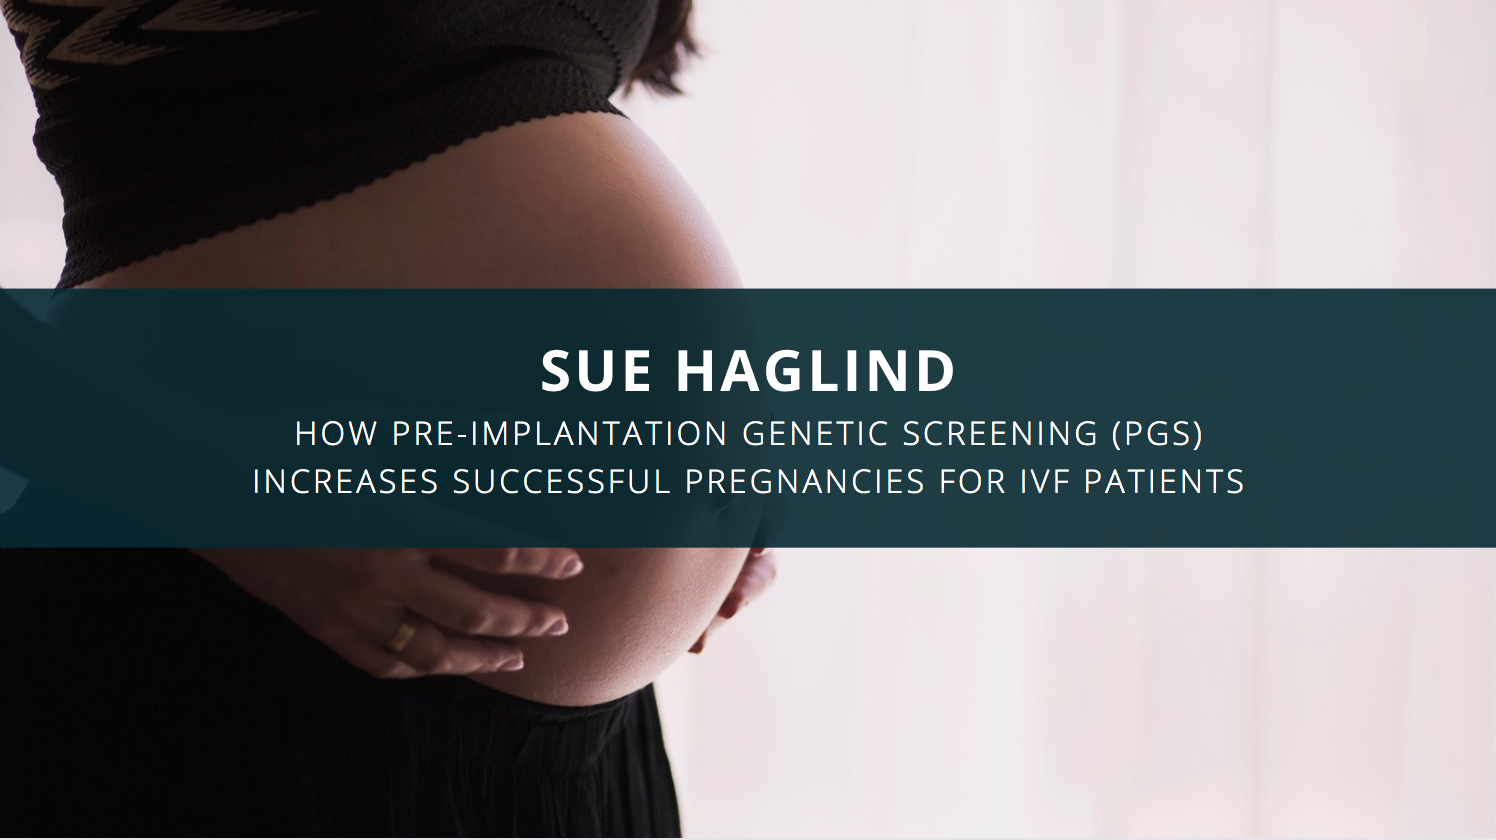 Sue Haglind Discusses How Pre-Implantation Genetic Screening (PGS) Increases Successful Pregnancies for IVF Patients